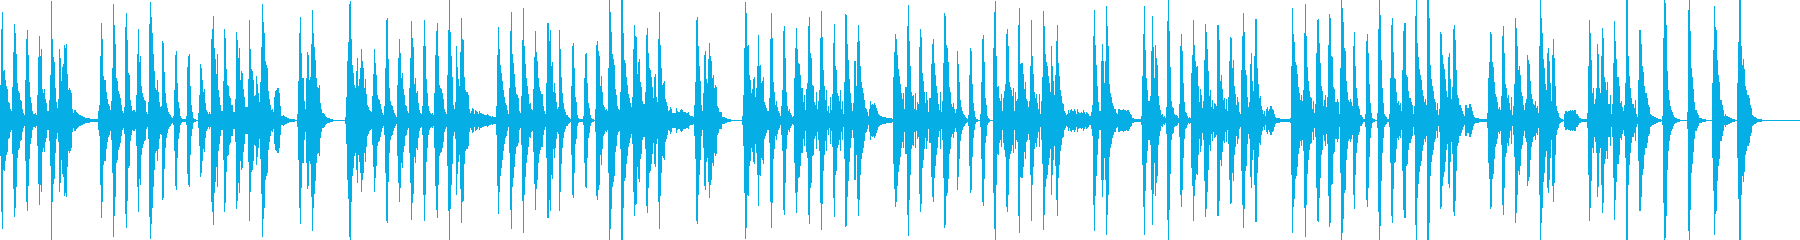 Funny Cute Playful's reproduced waveform